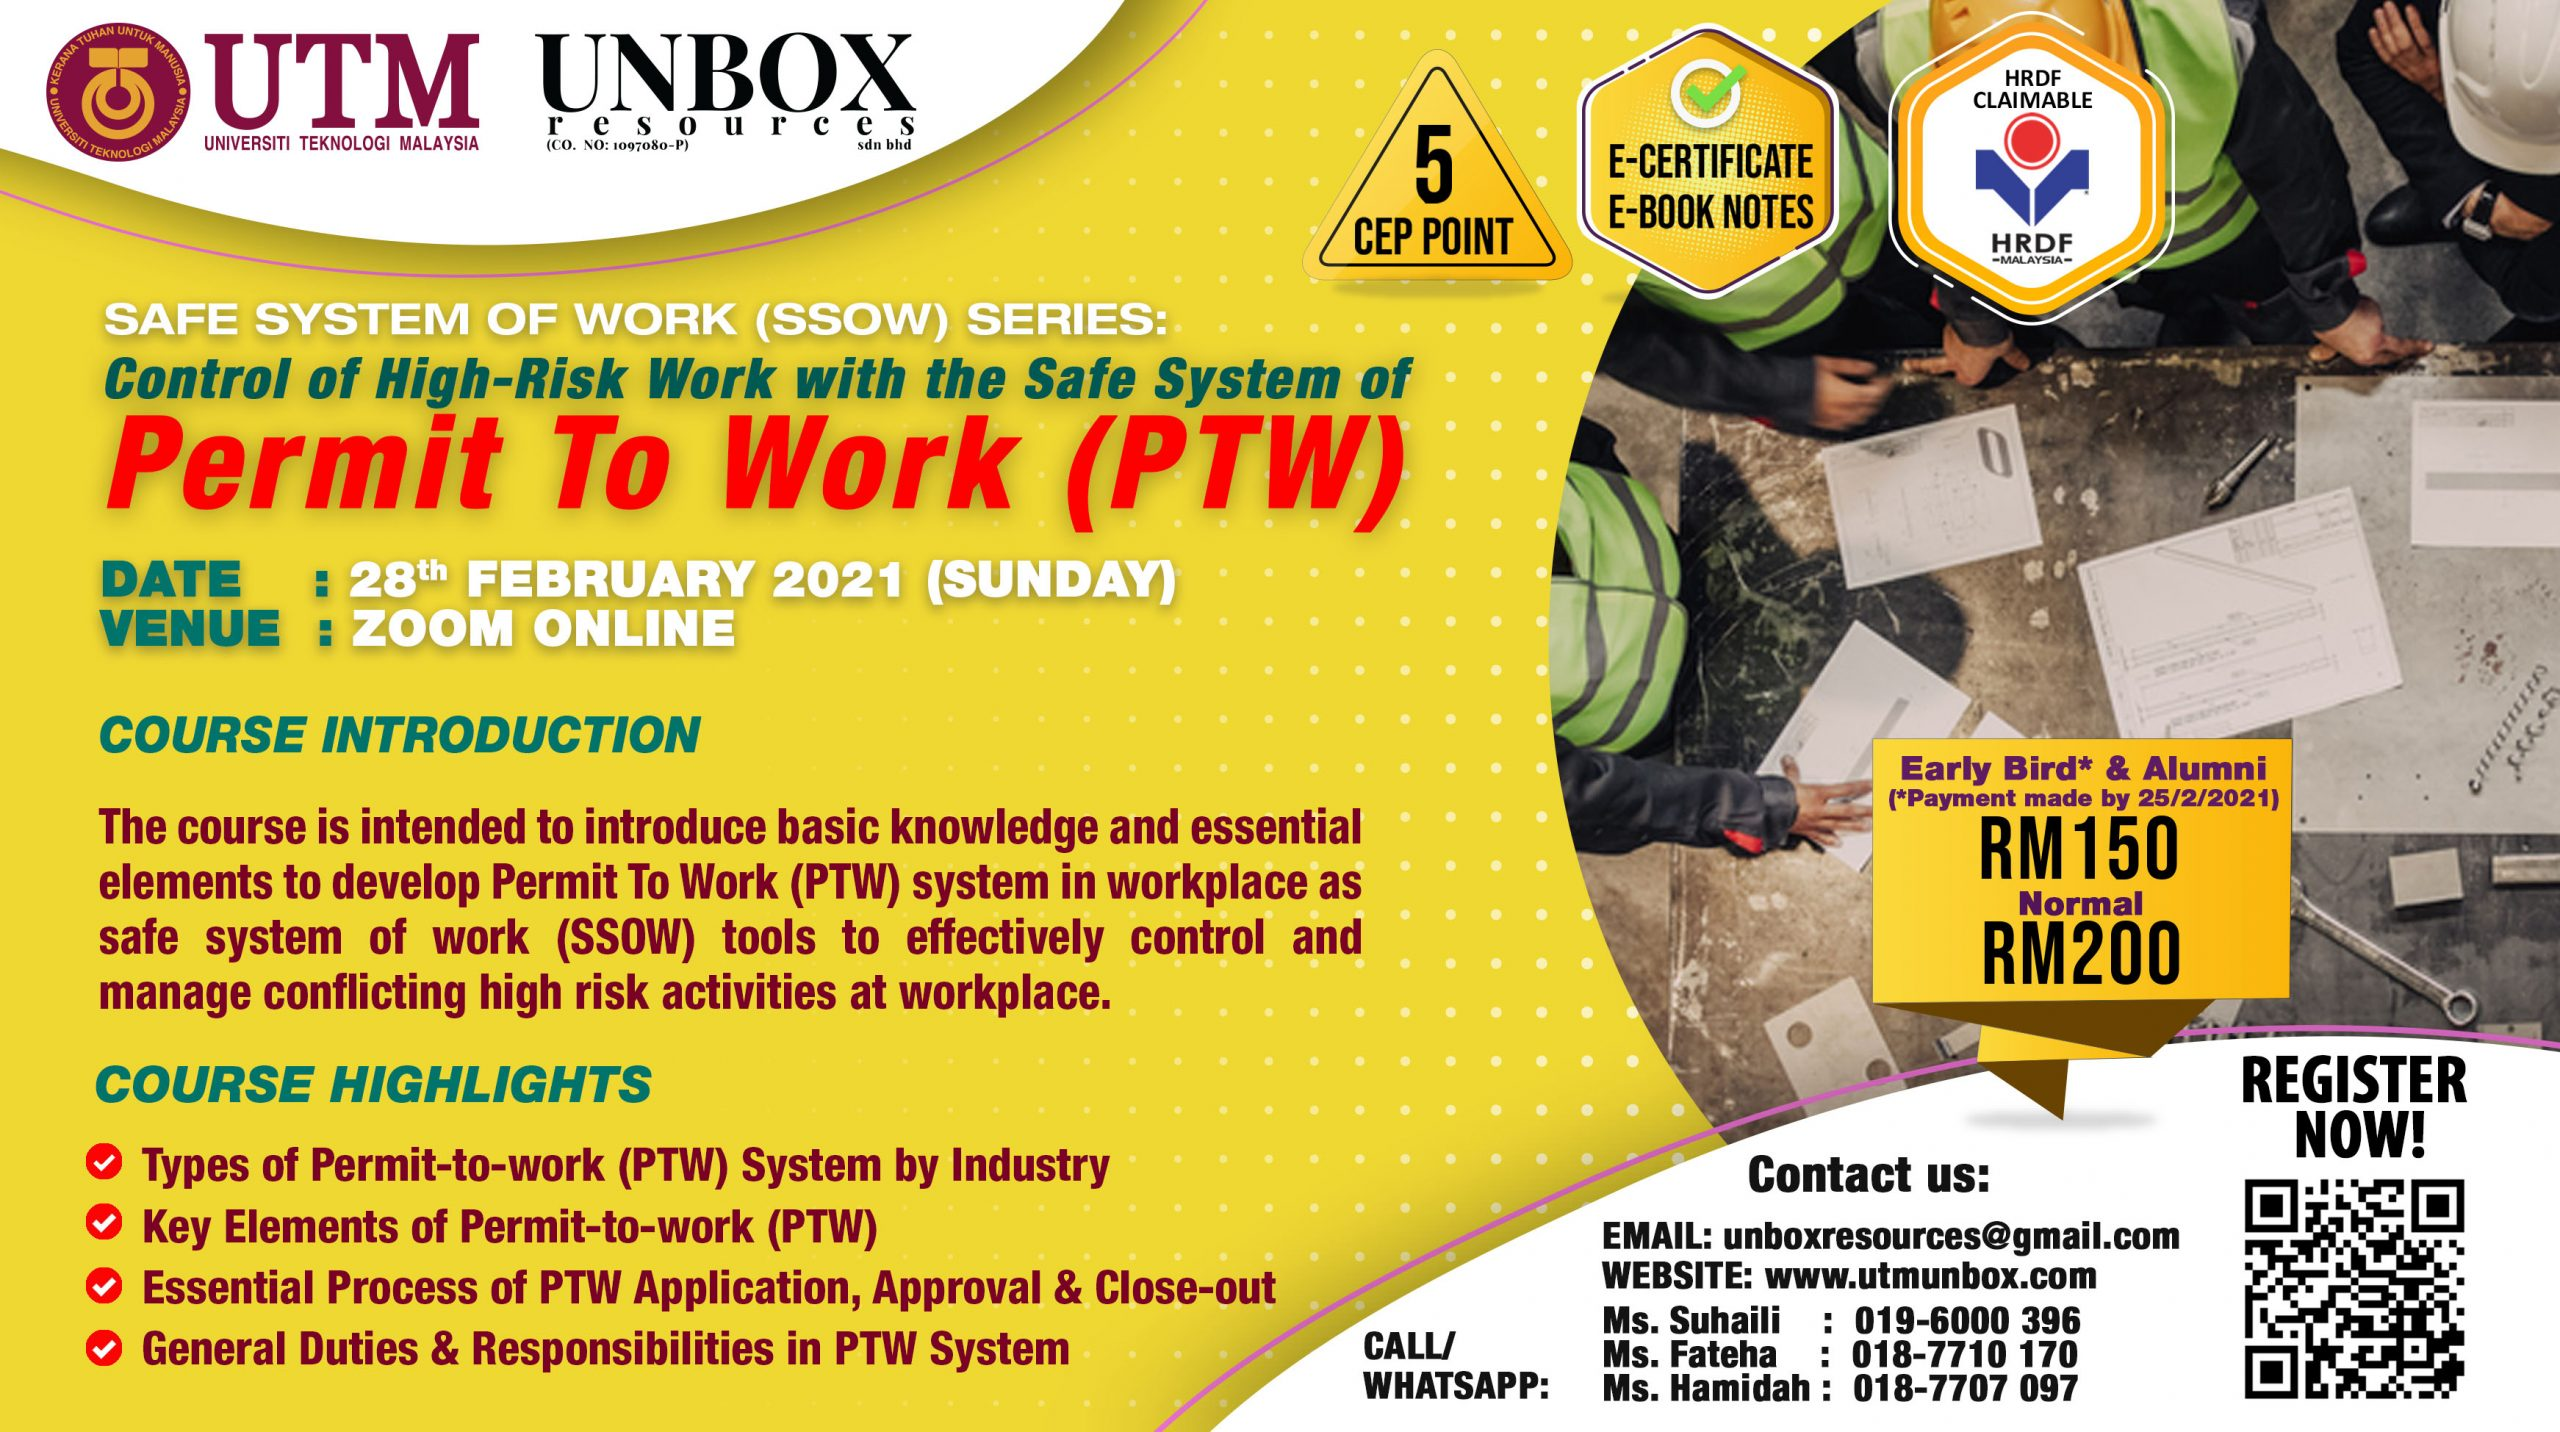 UPCOMING ONLINE CEP COURSE: UTM-UNBOX SAFE SYSTEM OF WORK (SSOW): CONTROL OF HIGH-RISK WORK WITH THE SAFE SYSTEM OF PERMIT TO WORK (PTW) (28 FEBRUARY 2021, ZOOM ONLINE)